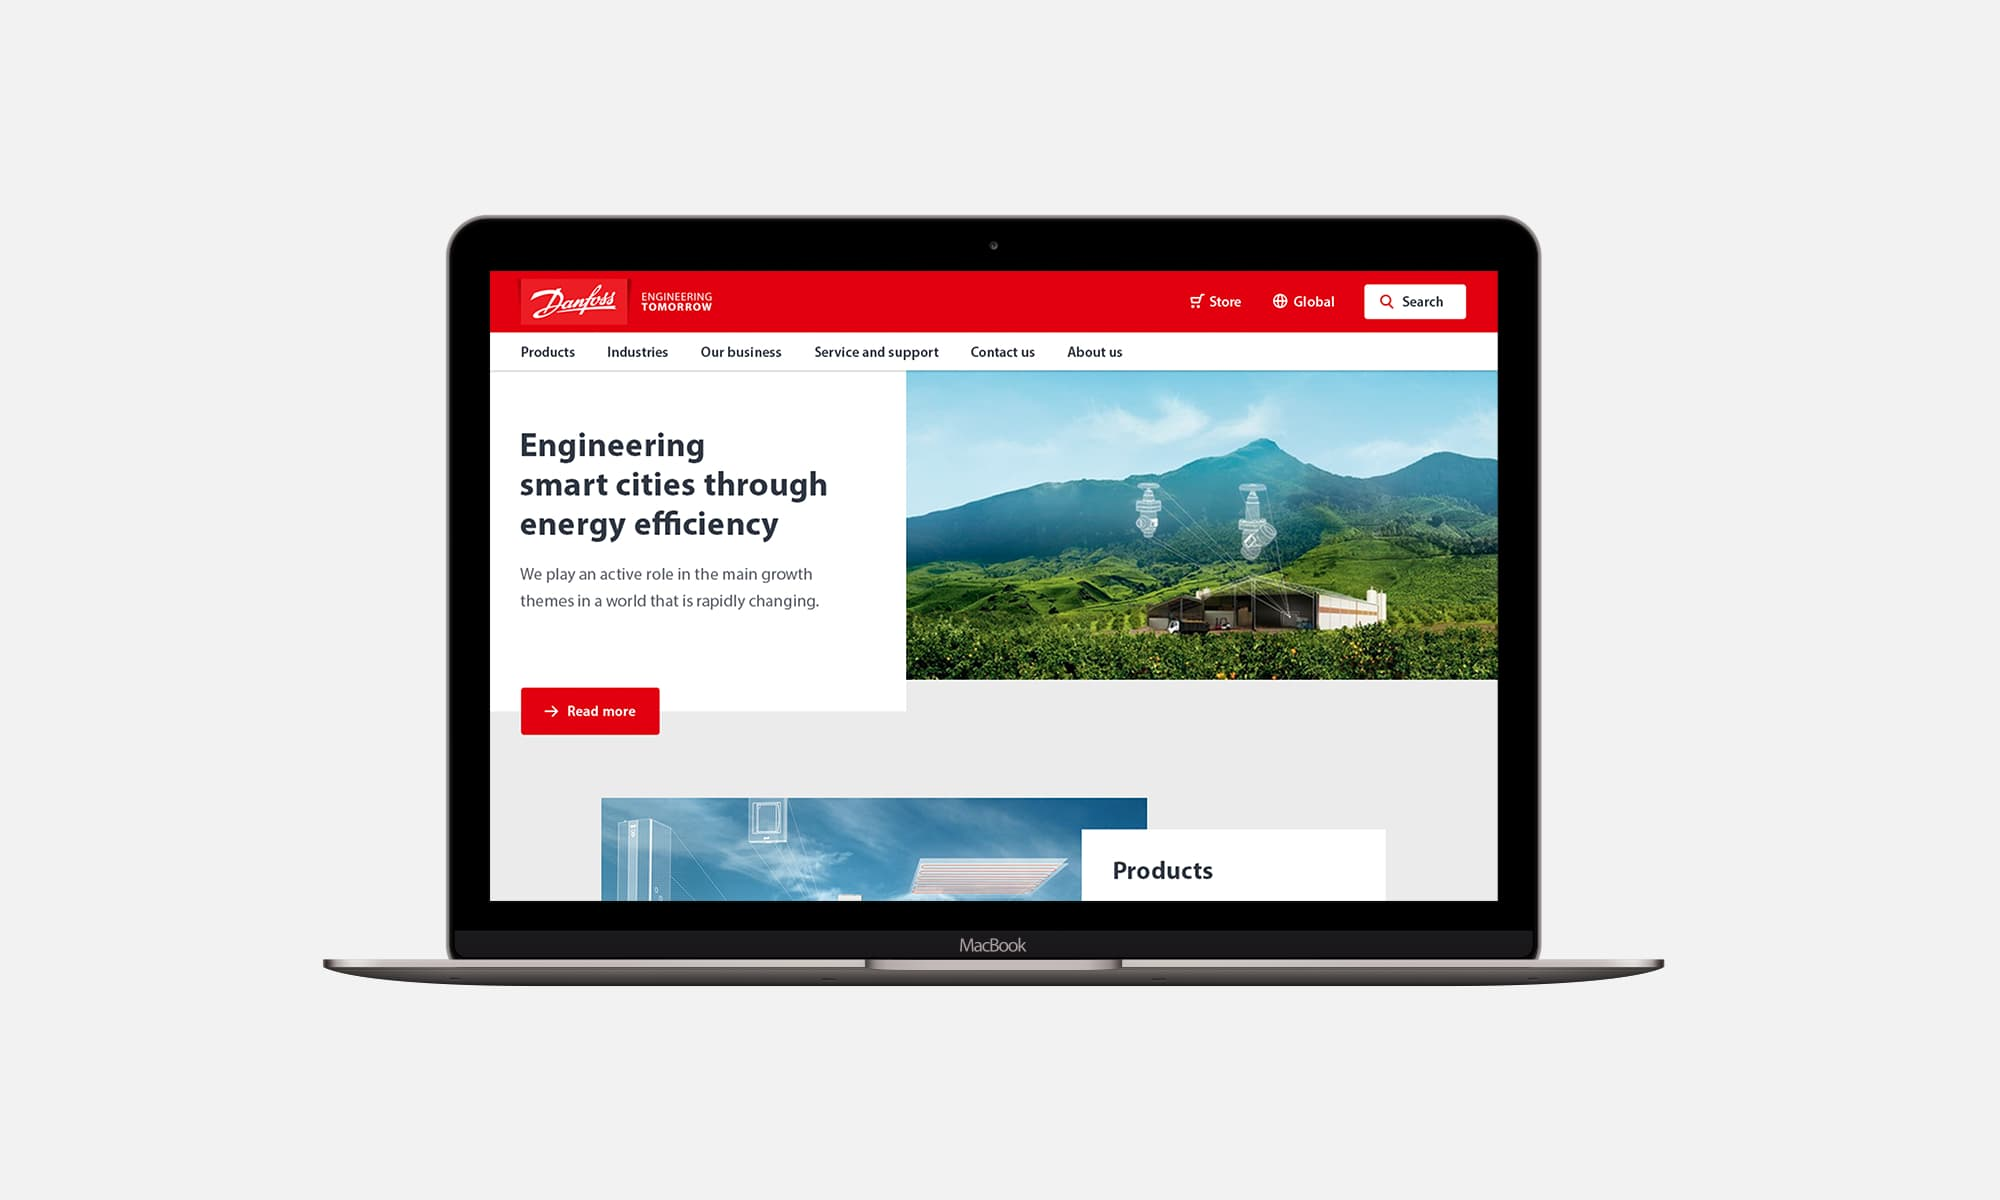 The updated Danfoss homepage